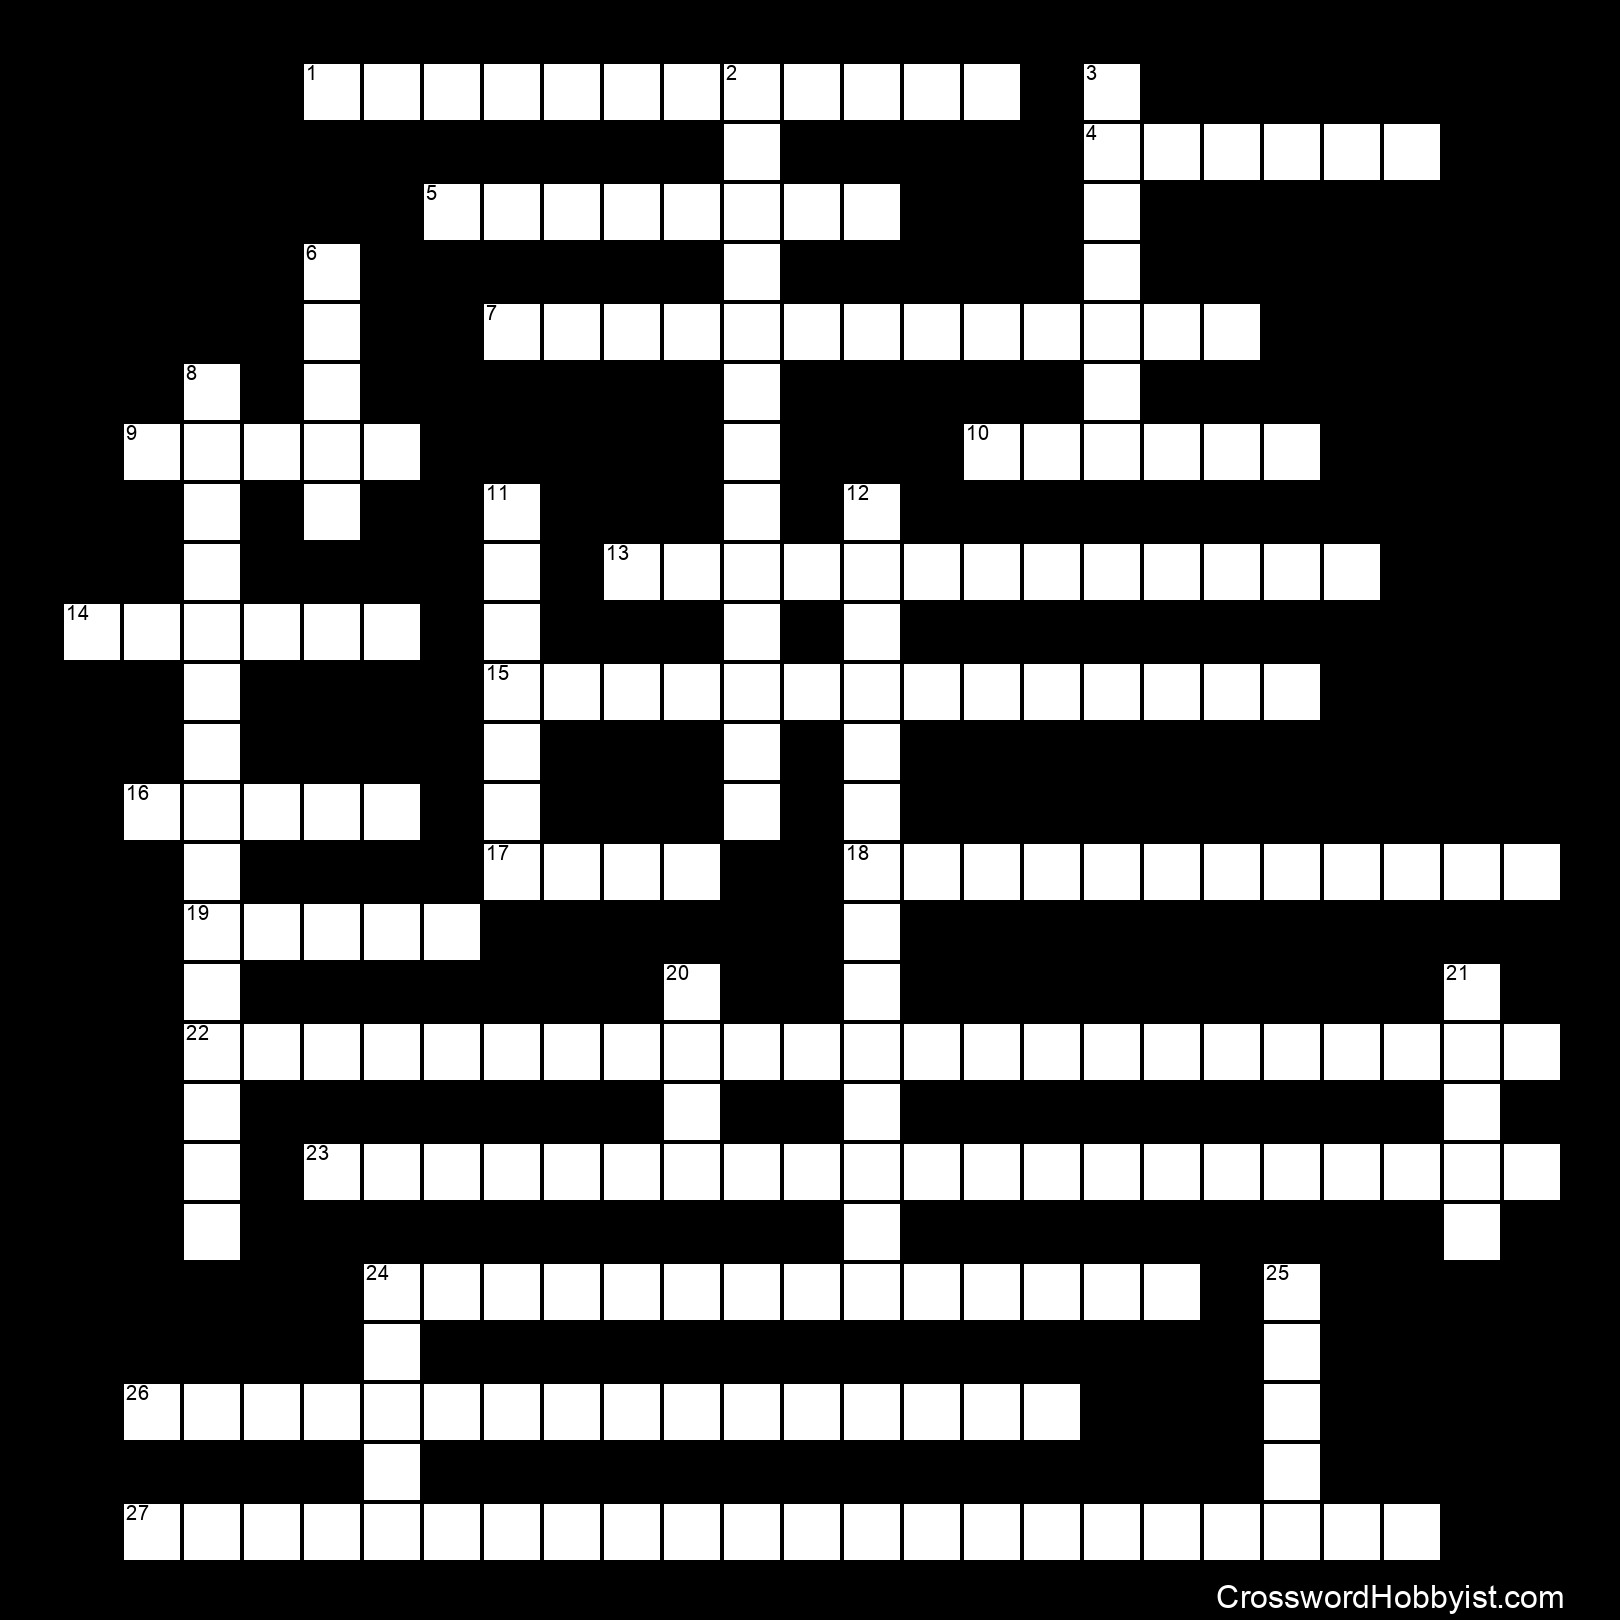 Great Expectations 2 - Crossword Puzzle